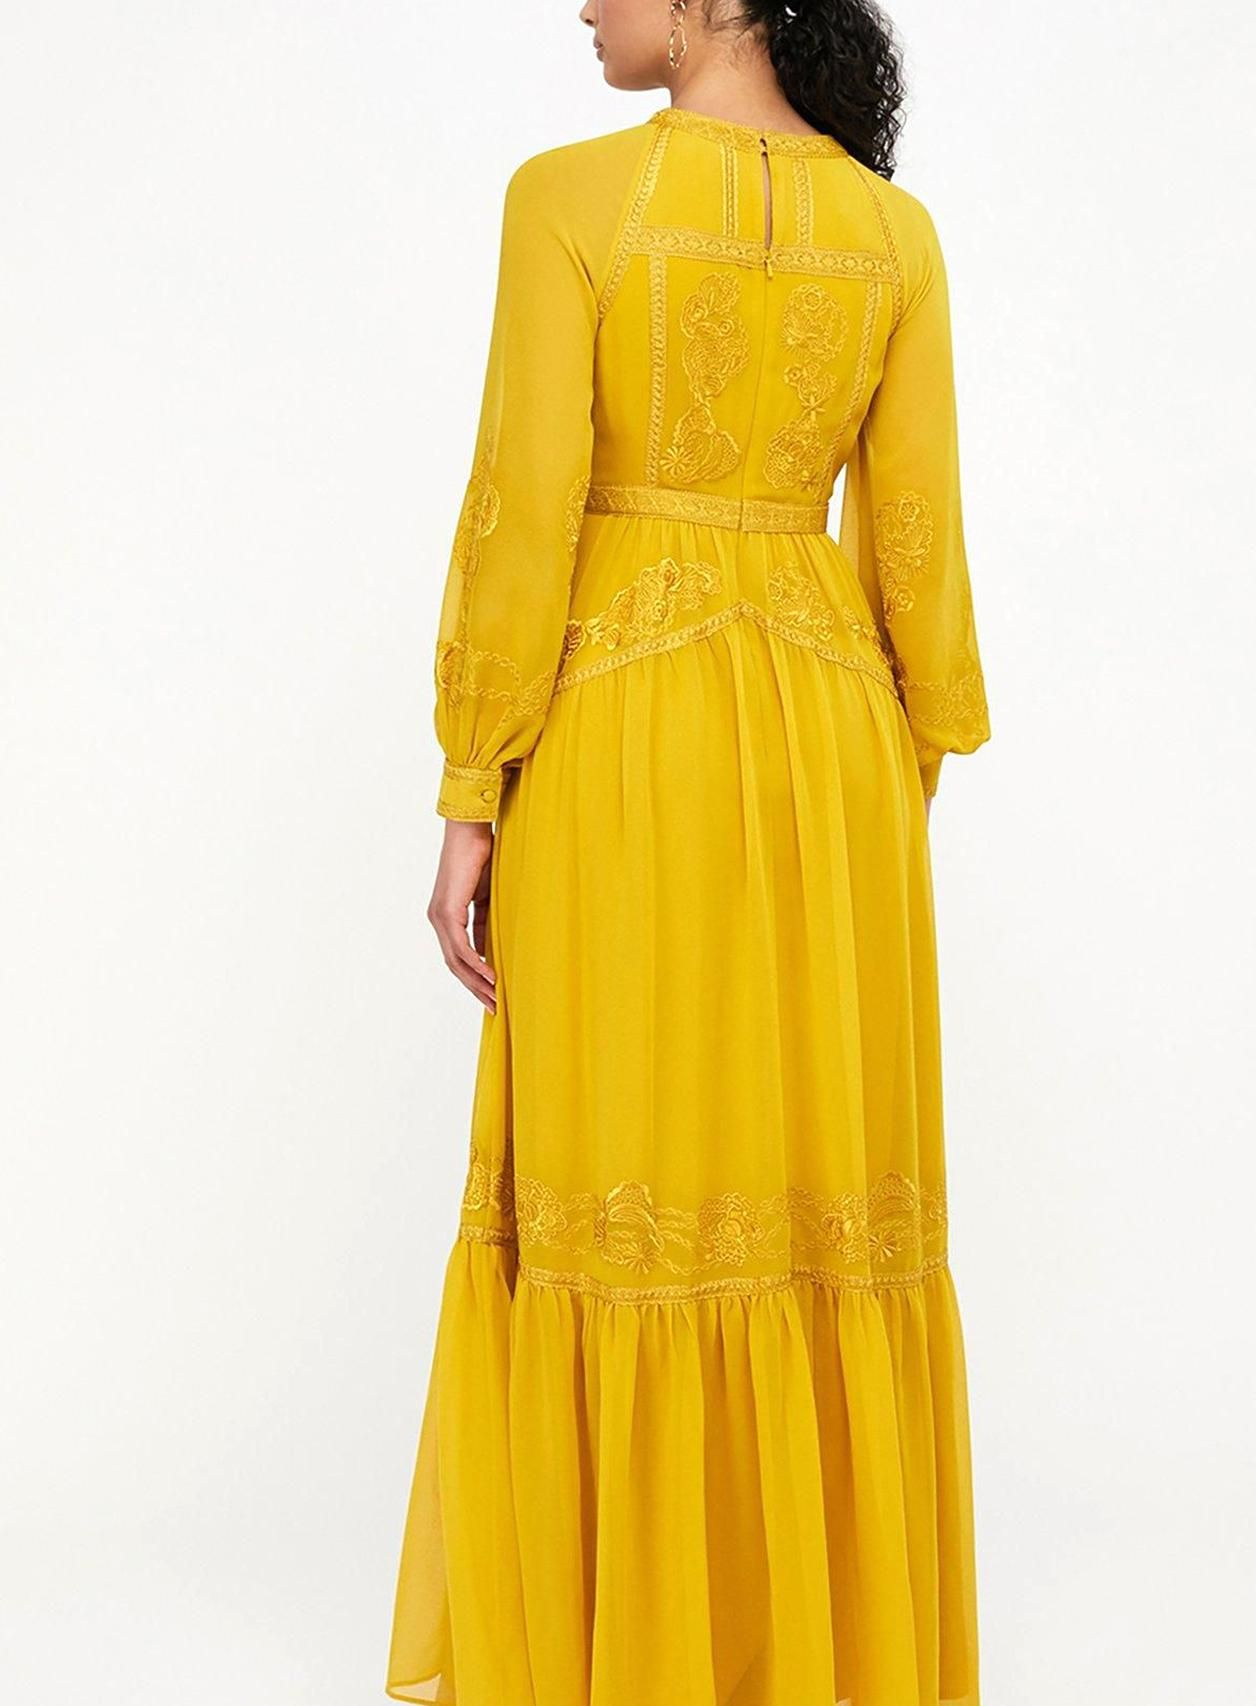 Monsoon Florence Embroidered Long Sleeve Dress Yellow Yellow Size 8 Women Yellow 8 Embroidered Maxi Dress Long Sleeve Embroidered Dress Maxi Gowns [ 1706 x 1256 Pixel ]